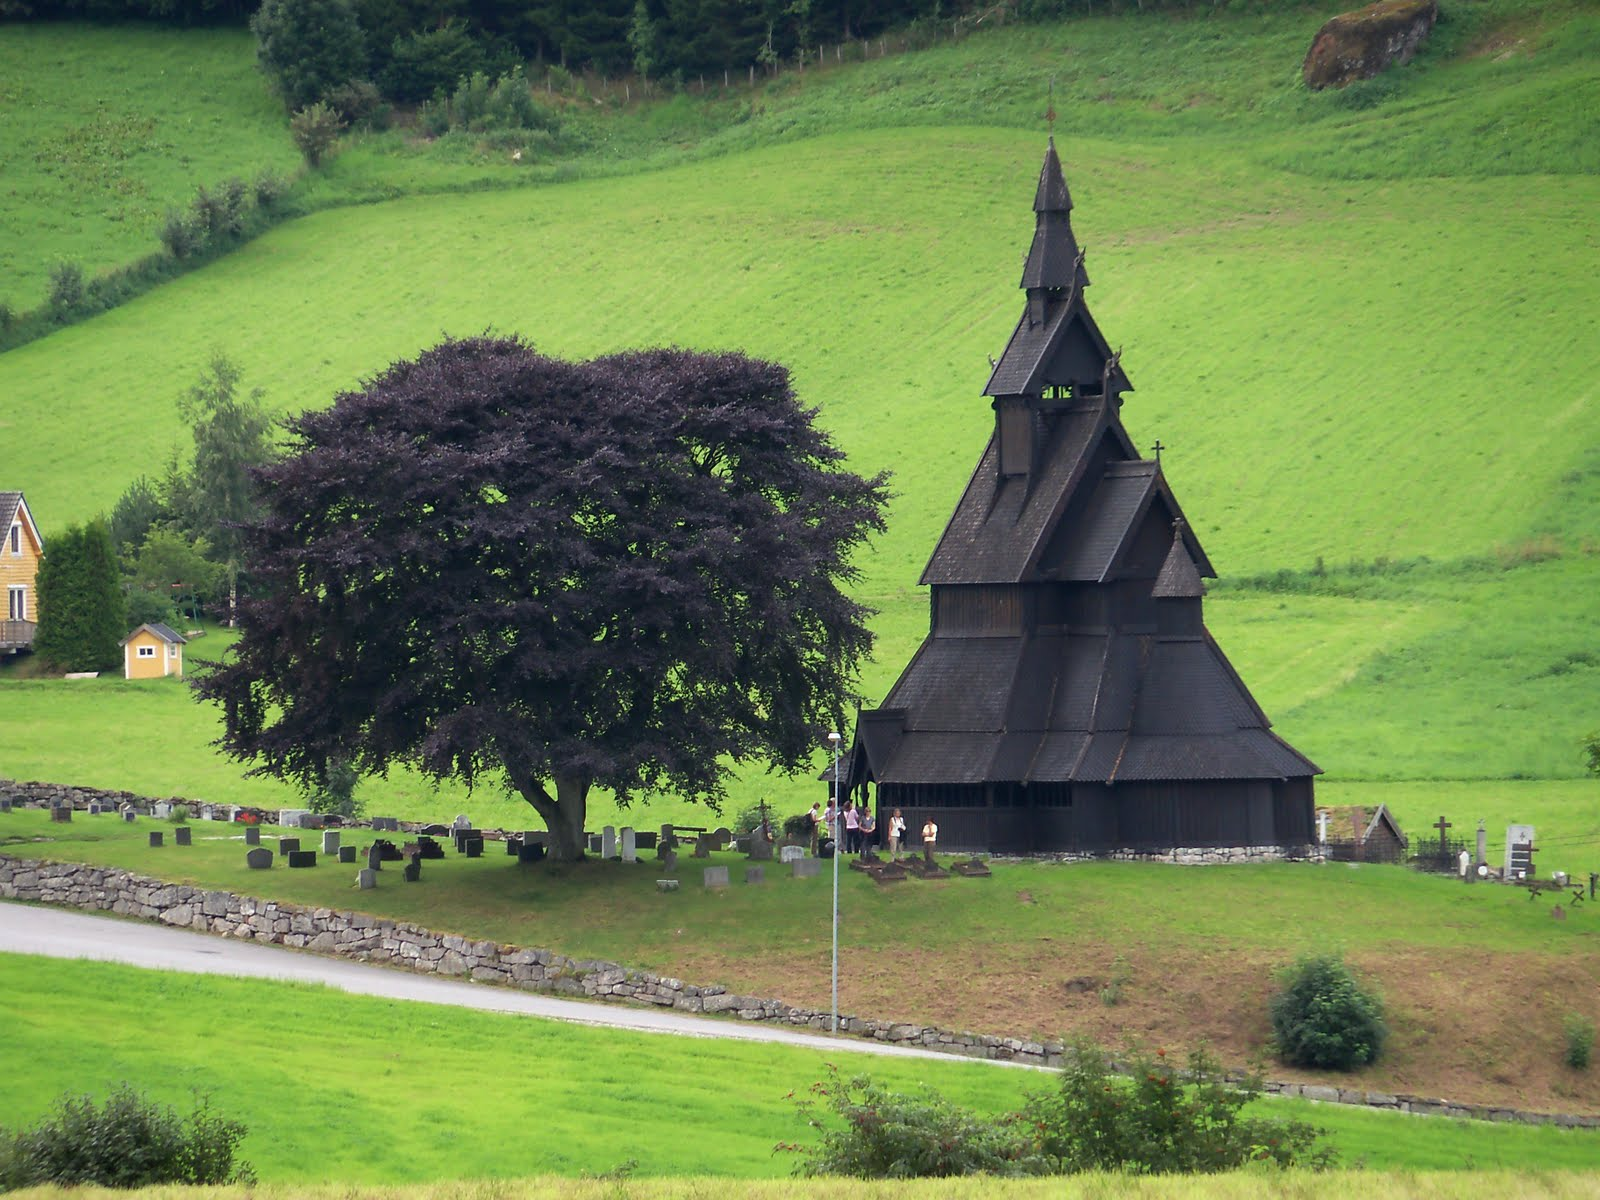 The Hoppersteads Life In Ireland Hopperstad Stave Church